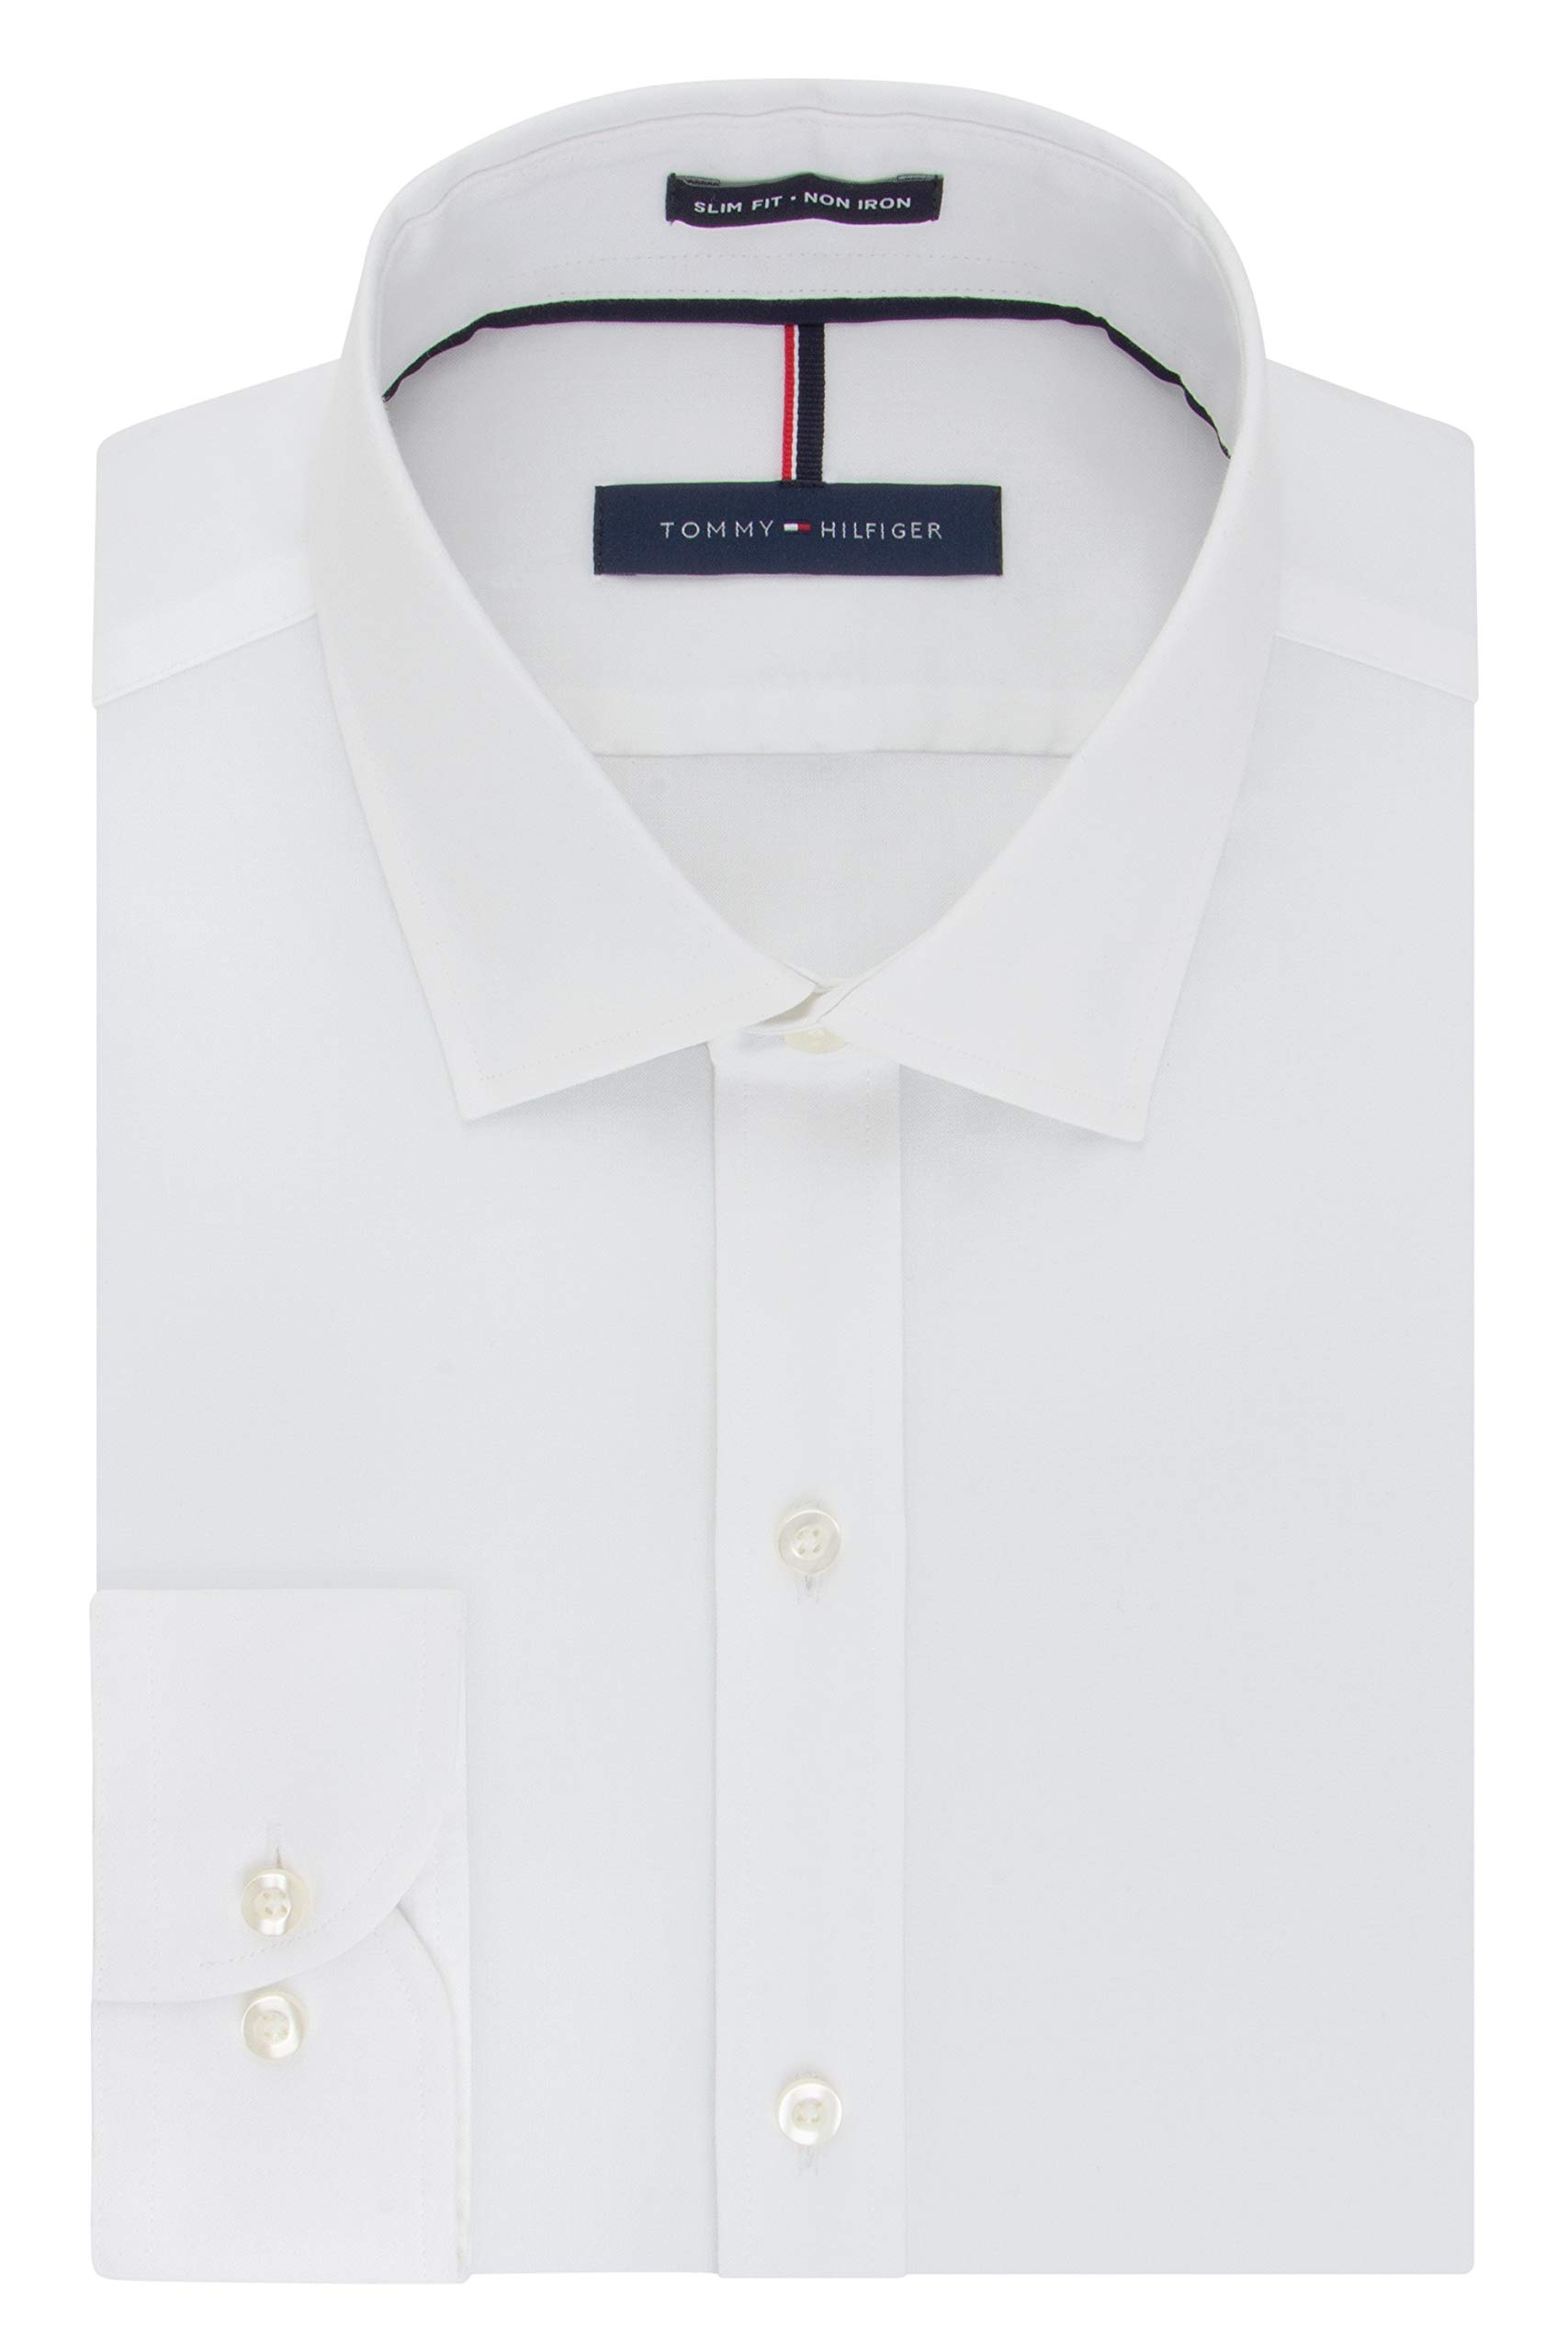 Tommy Hilfiger Men's Non Iron Slim Fit Solid Spread Collar Dress Shirt, White, 17.5'' Neck 32''-33'' Sleeve